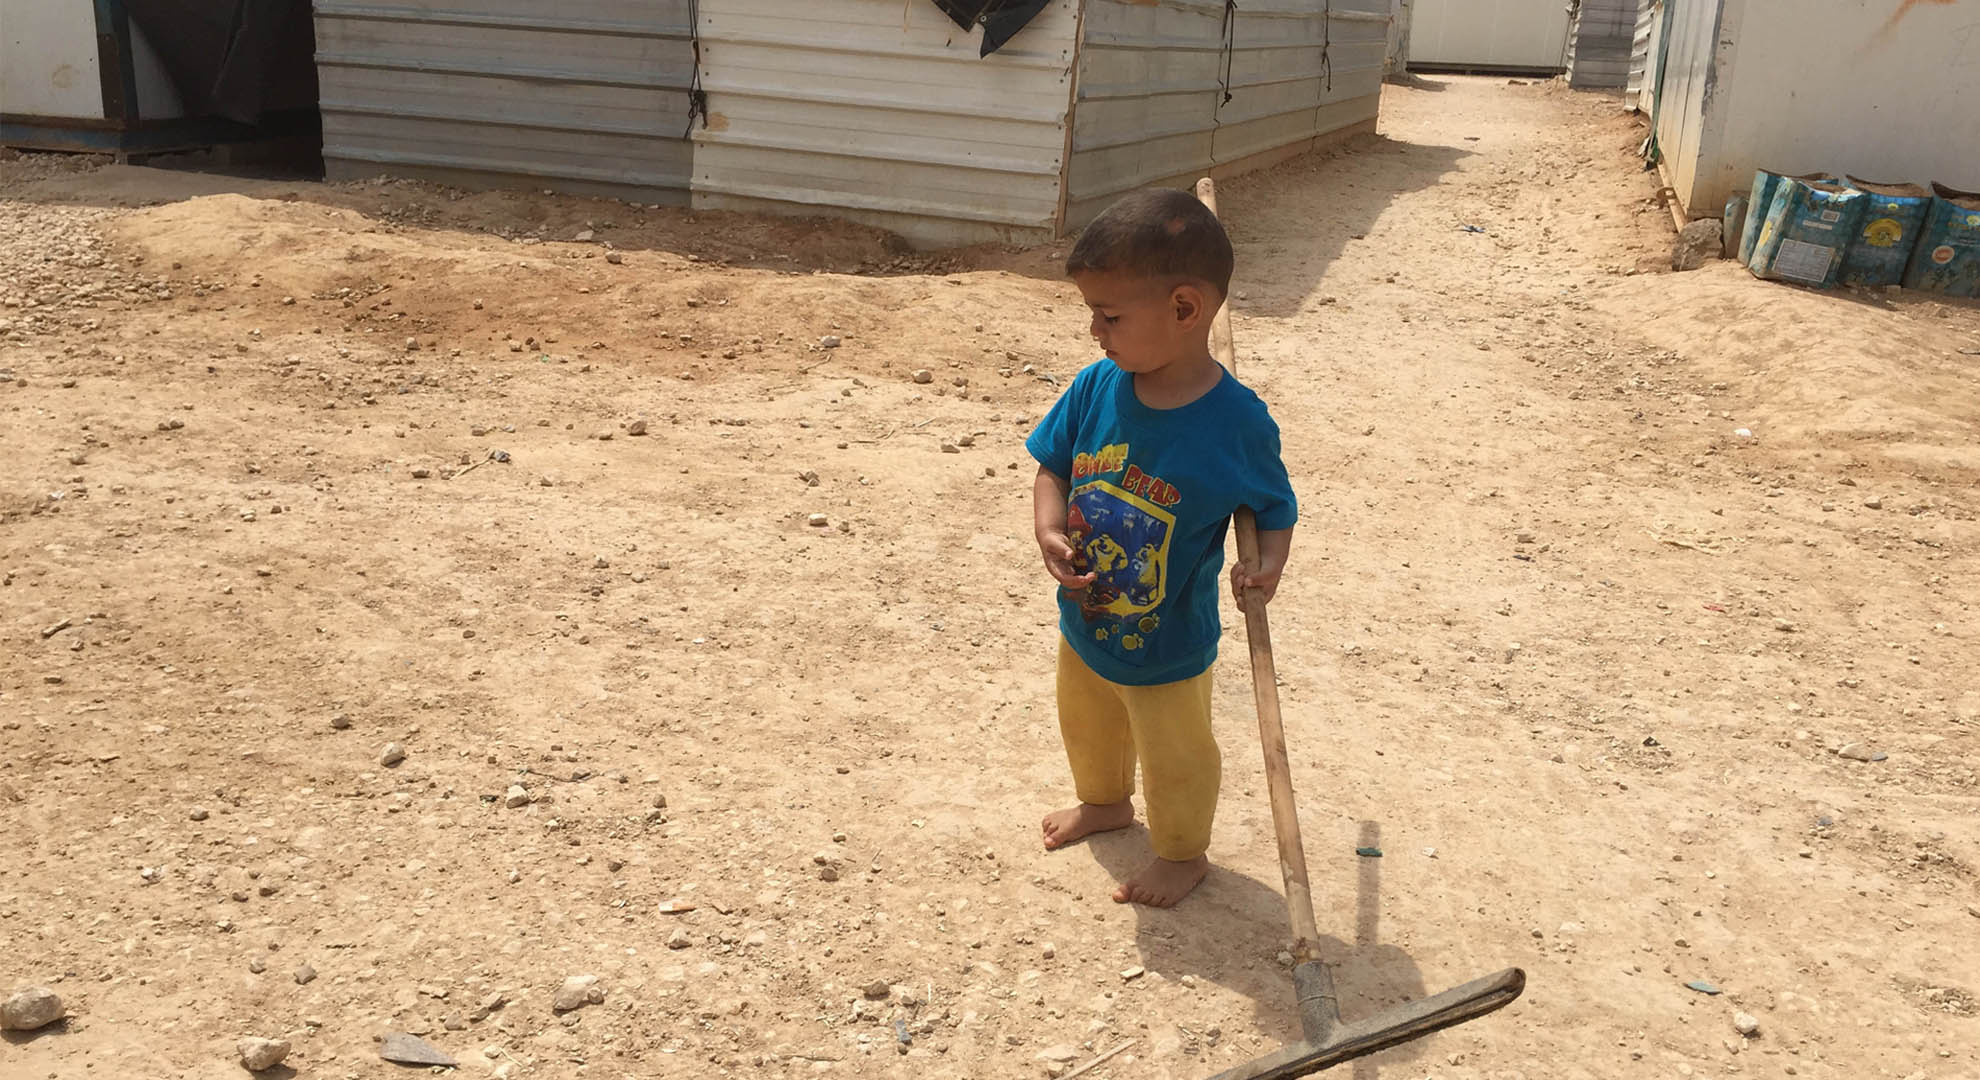 Childhood in a temporary camp in Jordan.